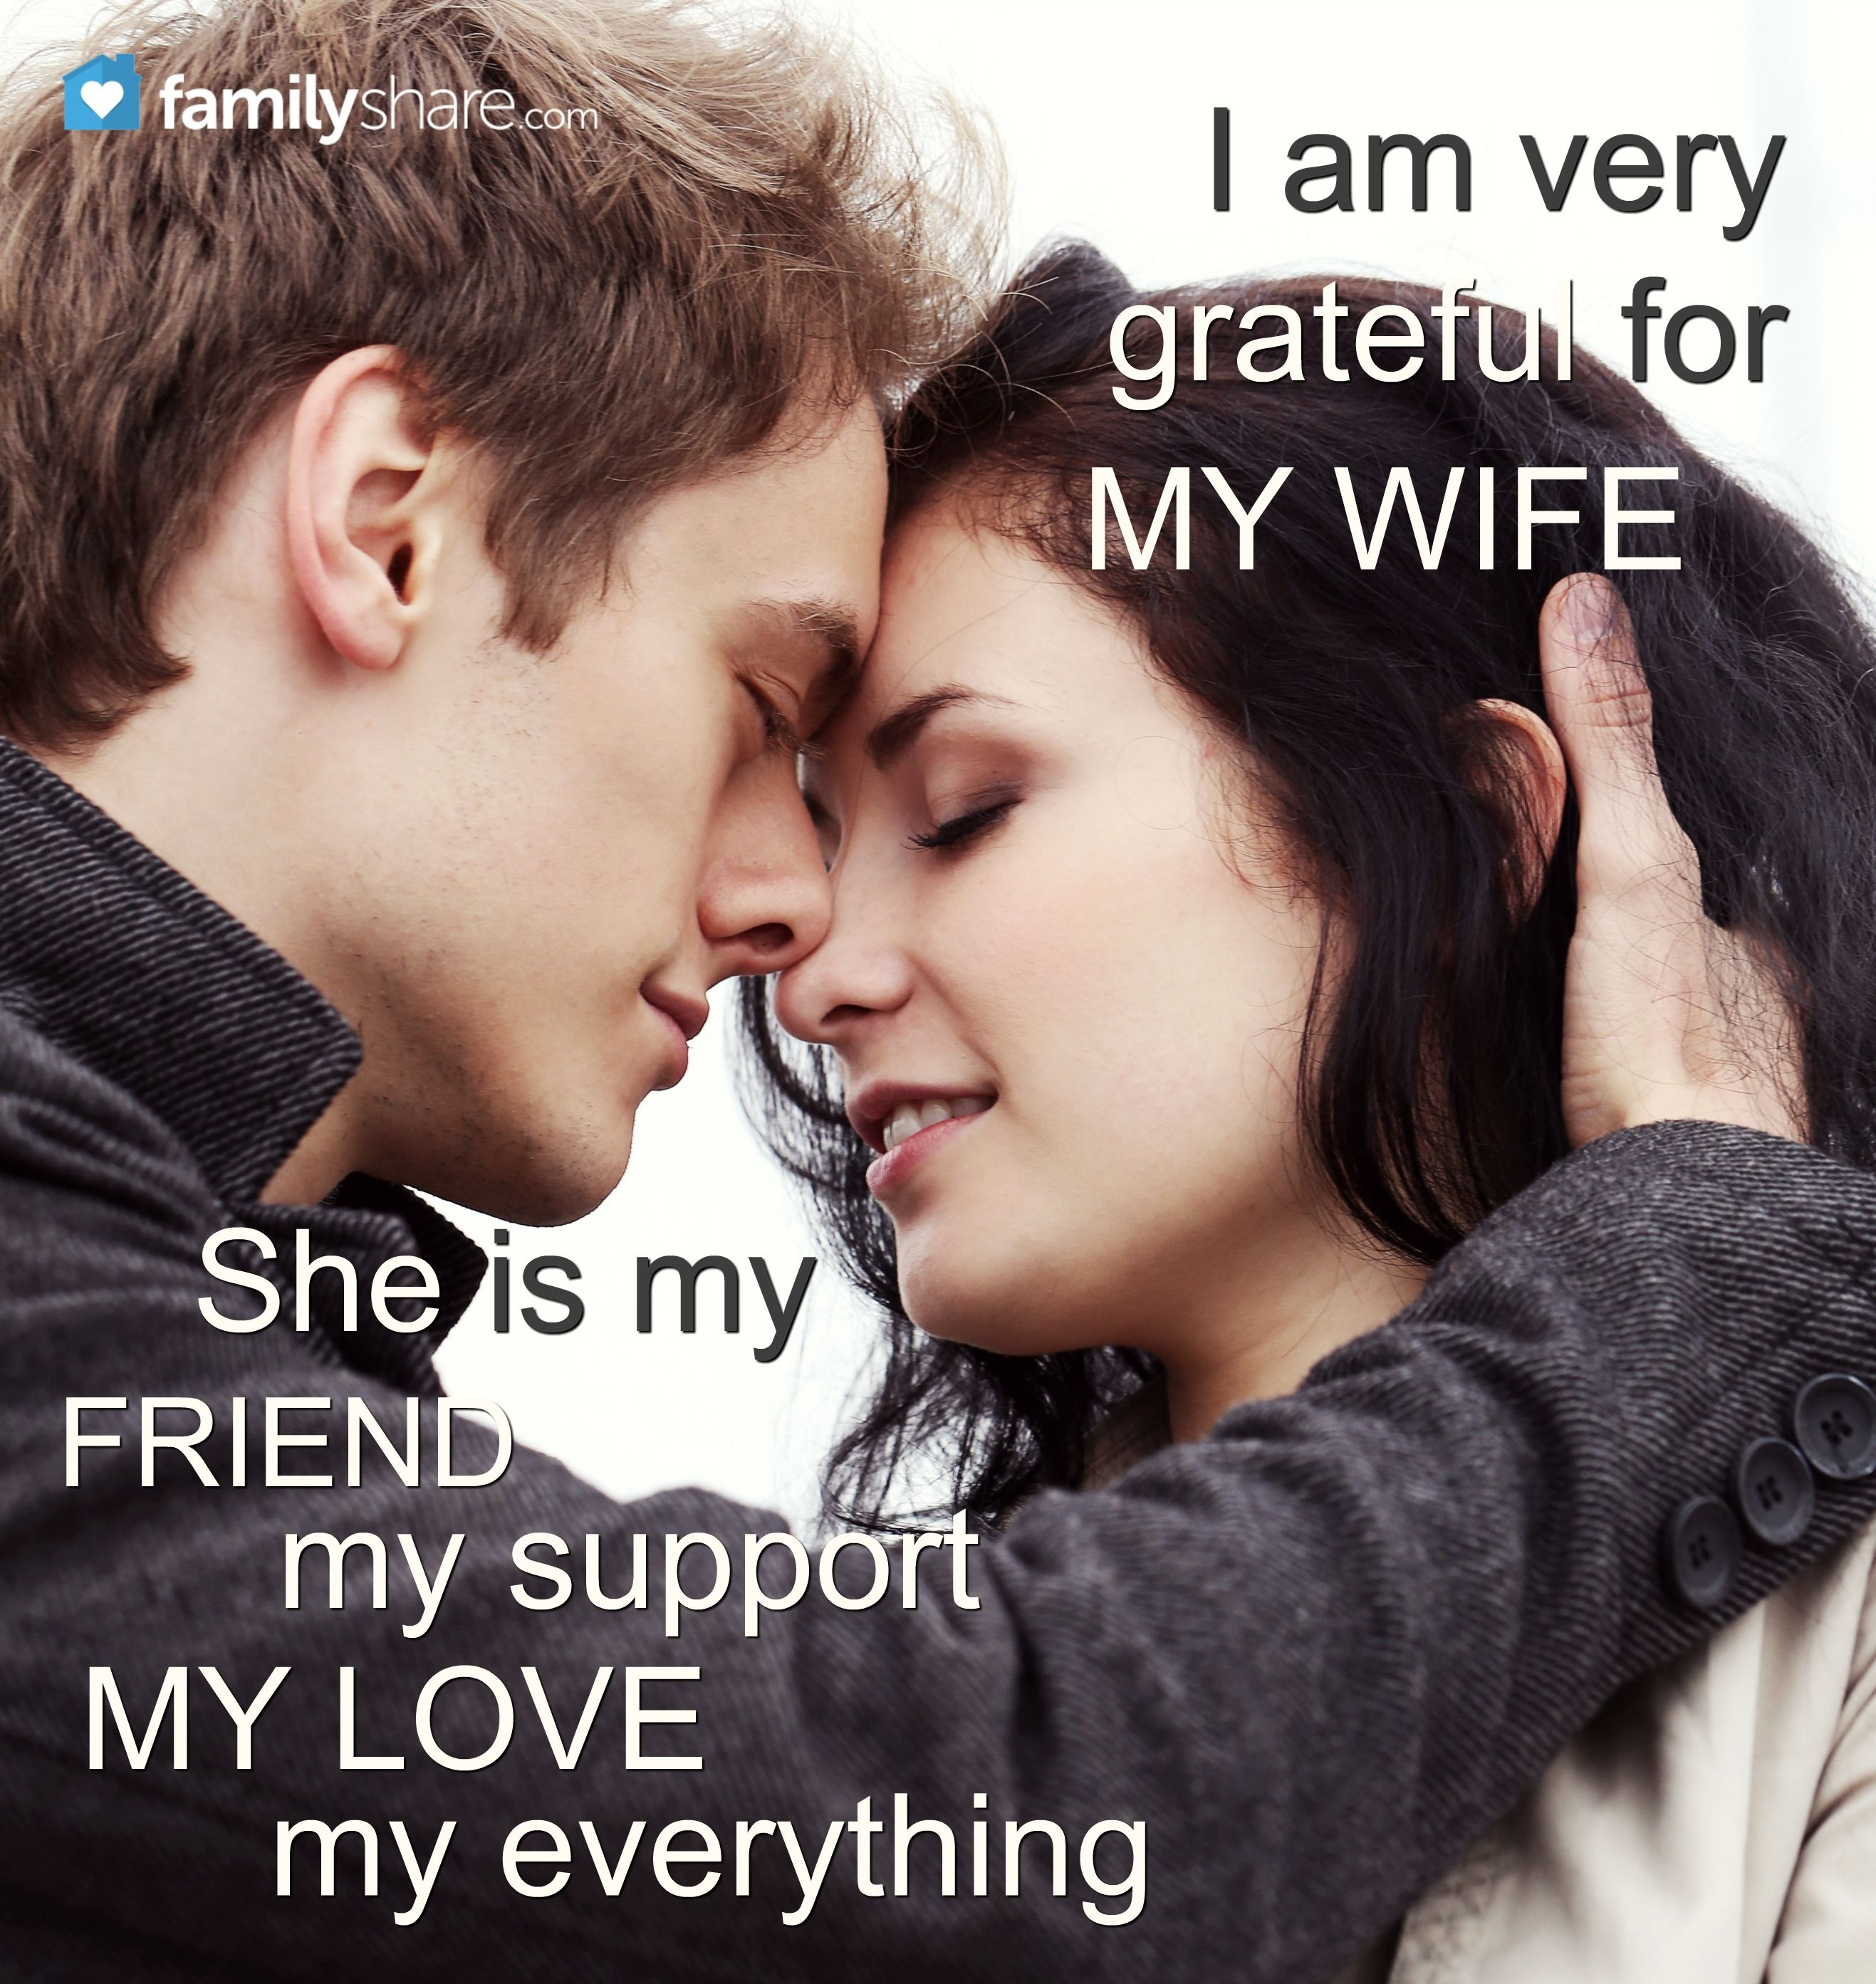 I Am Very Grateful For My Wife She Is My Friend My Support My